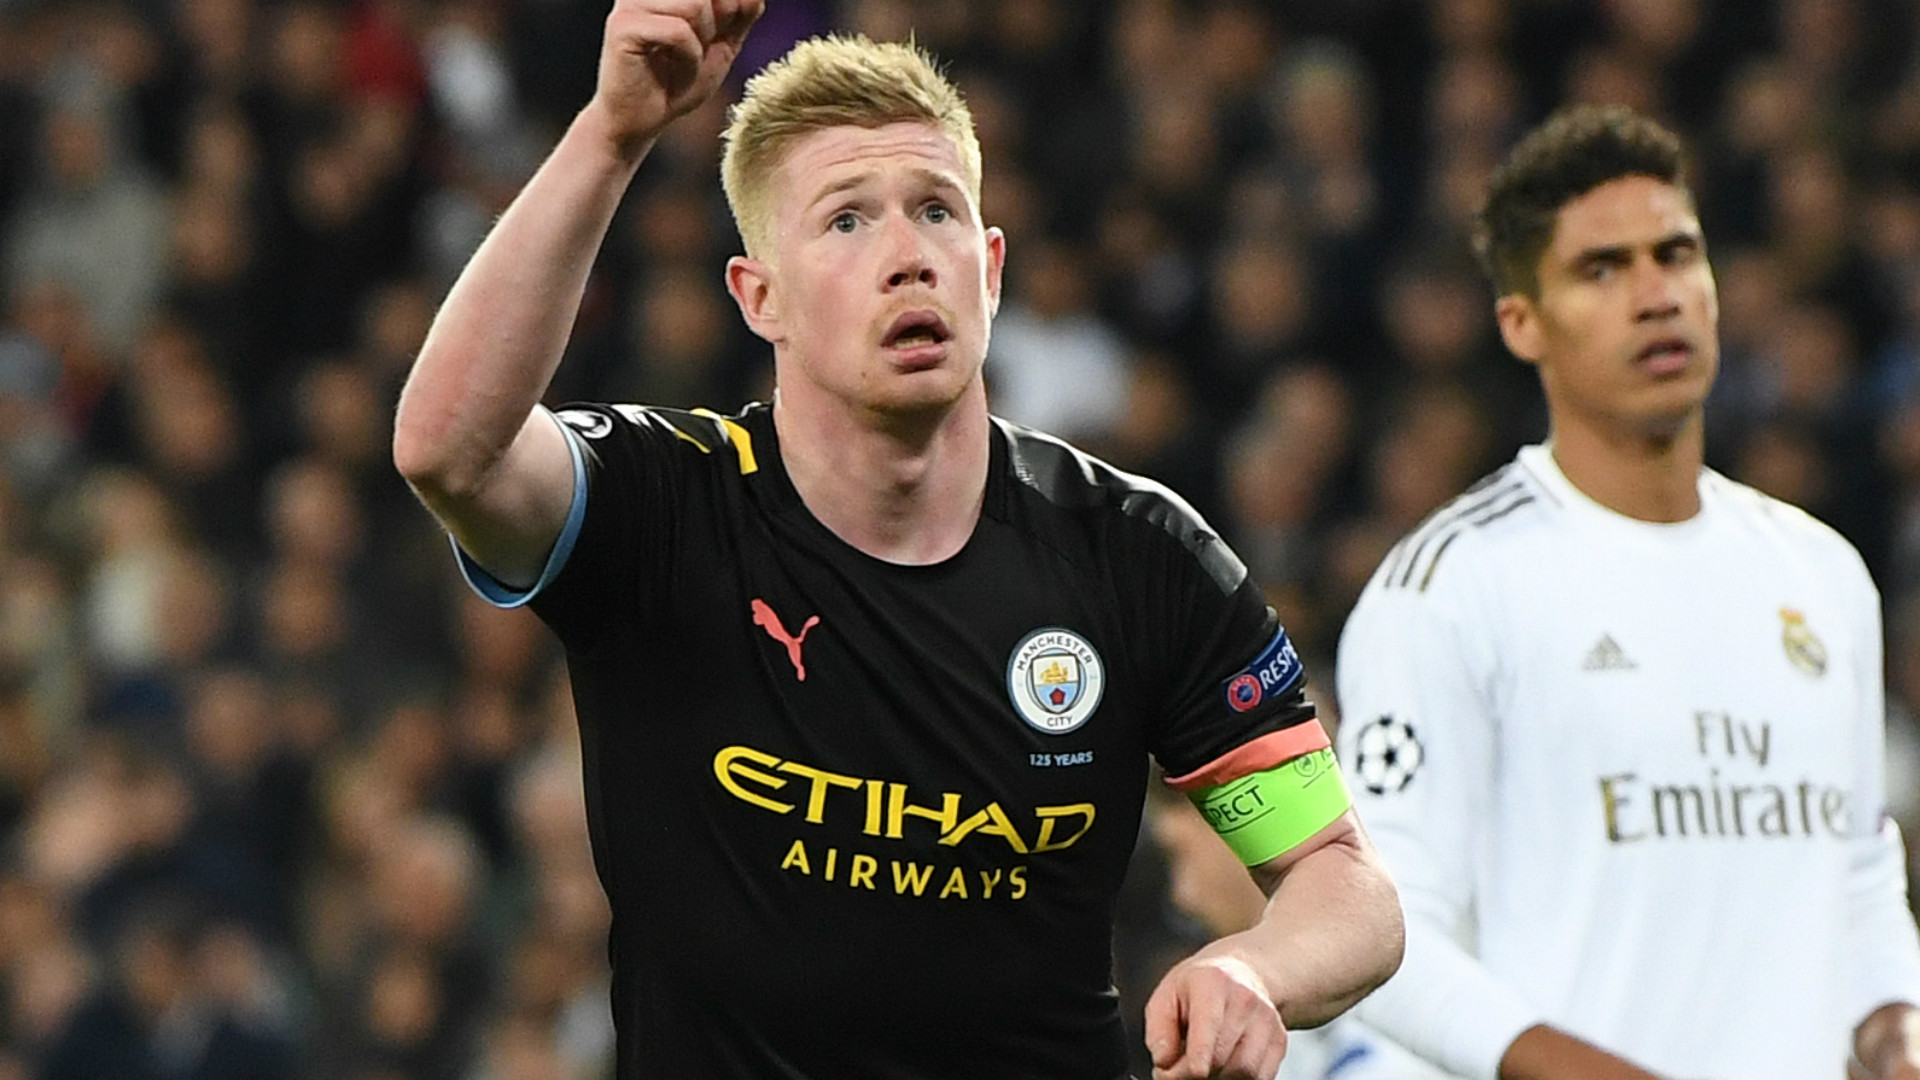 Martinez: De Bruyne has matured into an exceptional player